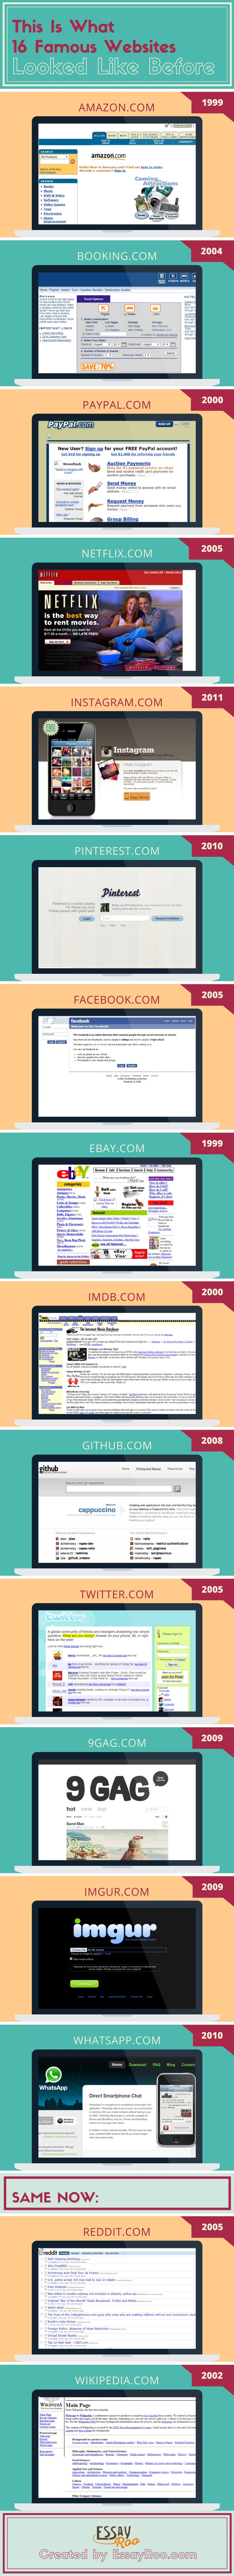 This is What 16 Famous Domains Looked Like Before